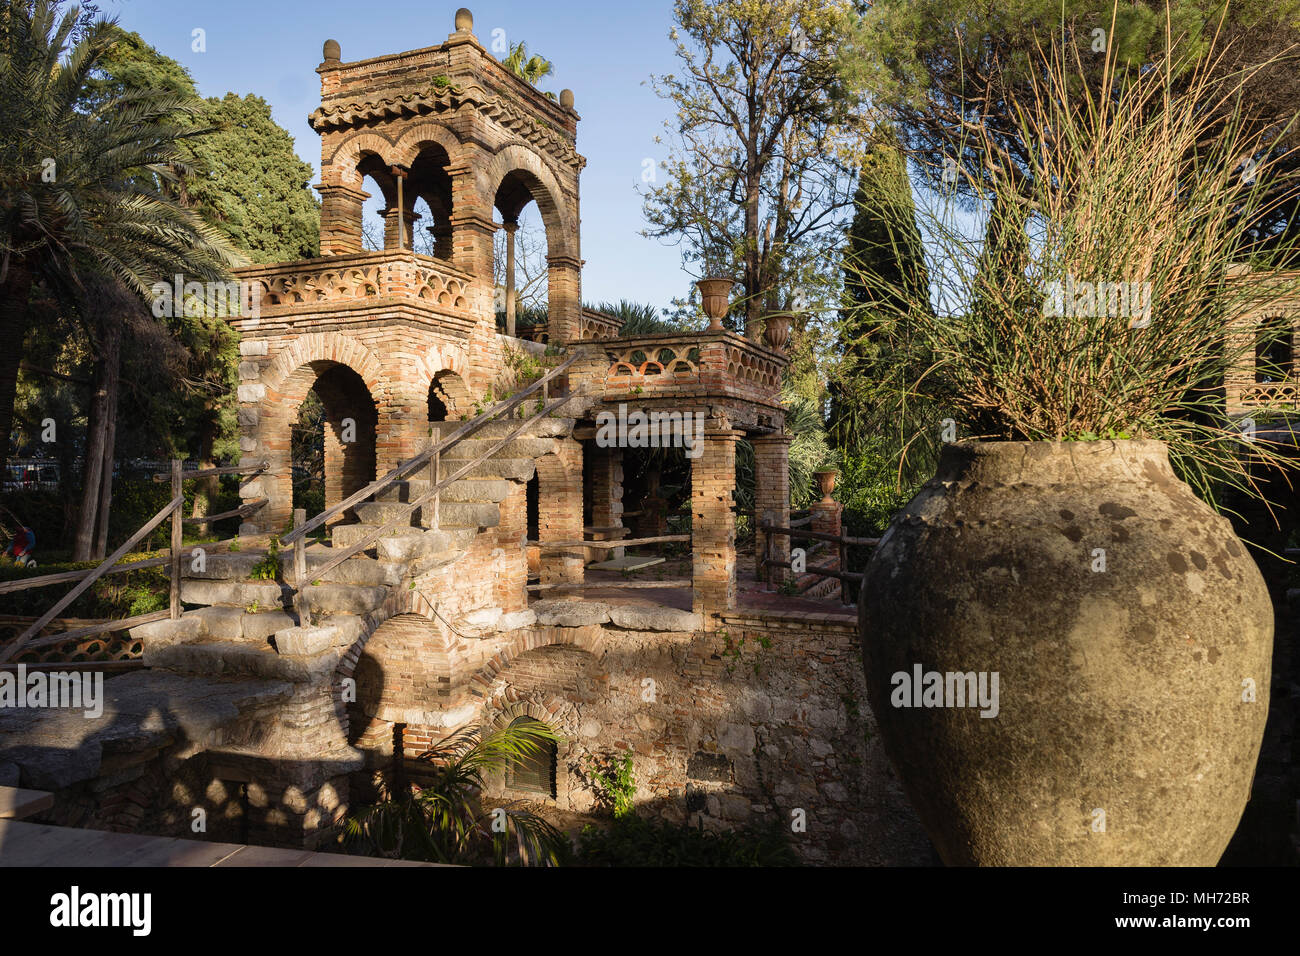 The Beehive building in the city park (Villa Comunale) of Taormina, Sicily. - Stock Image